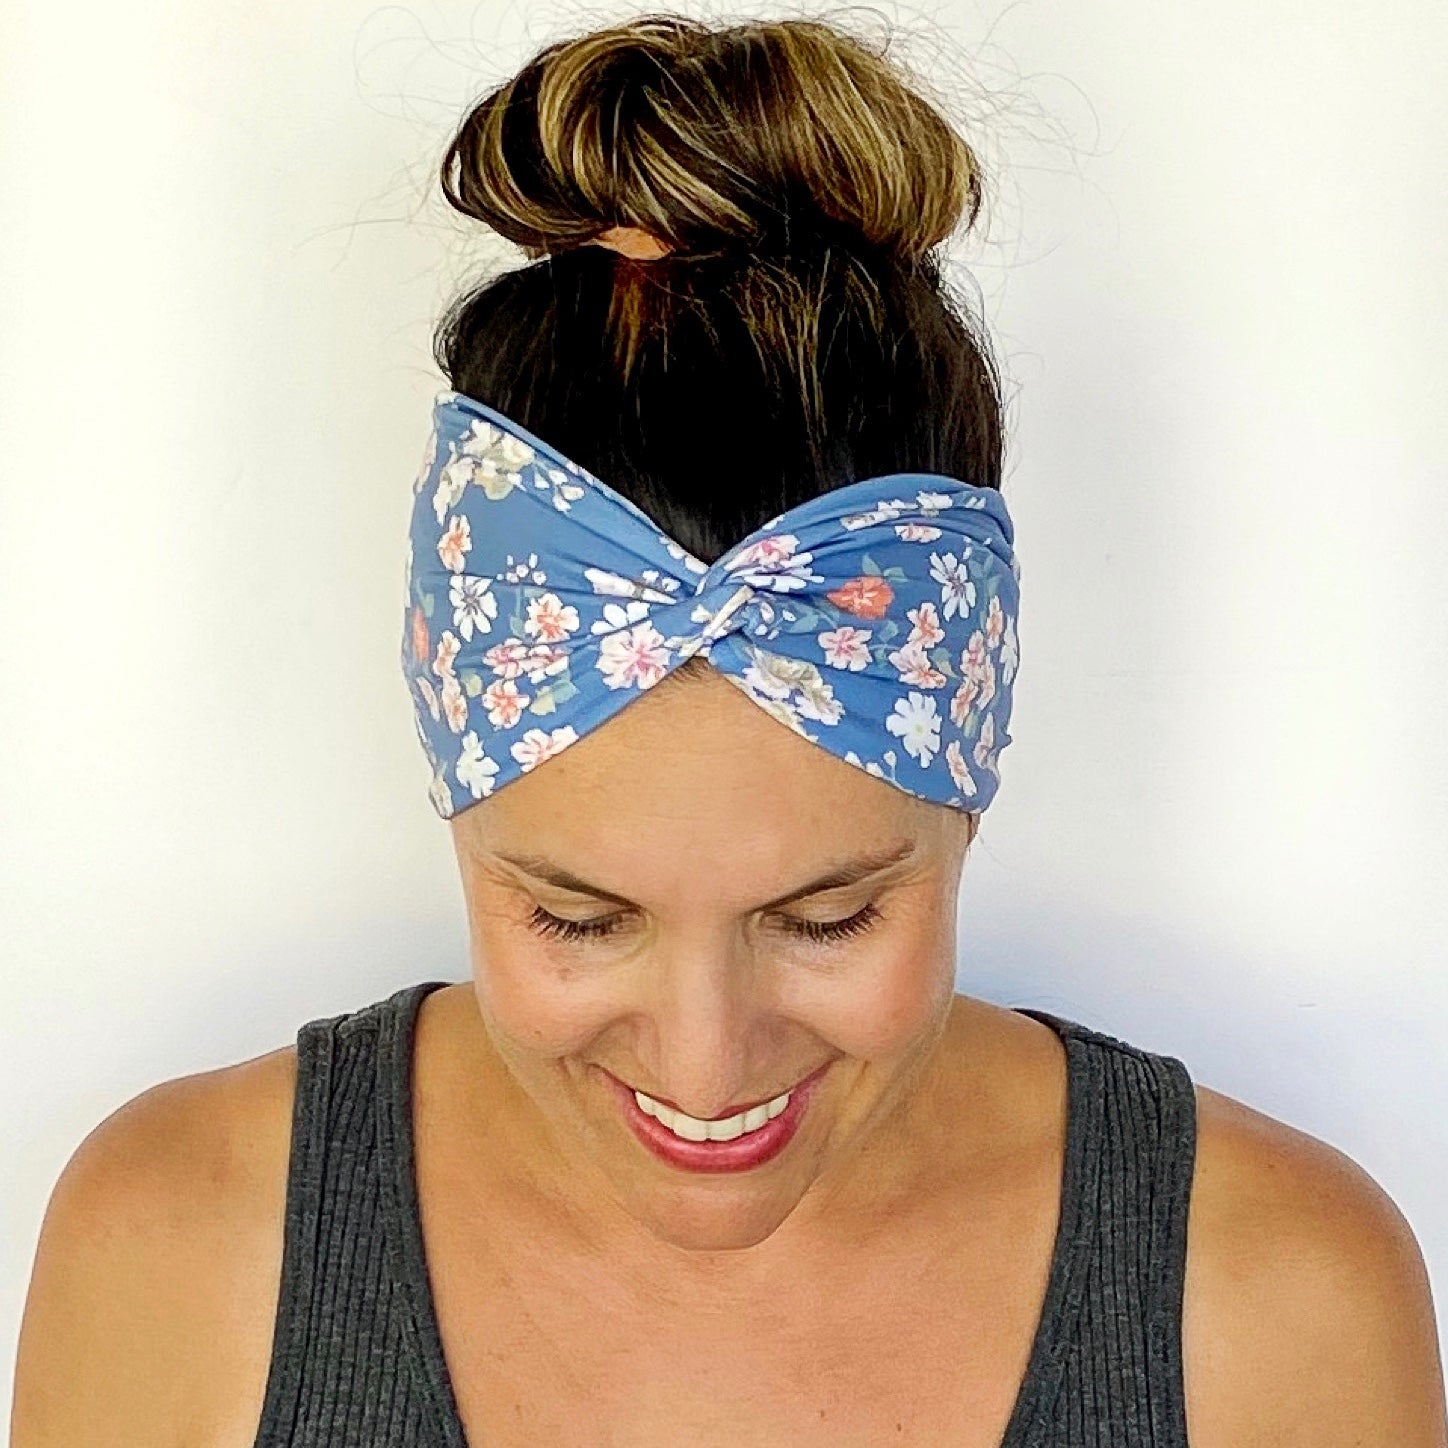 Kensington Turban Headband